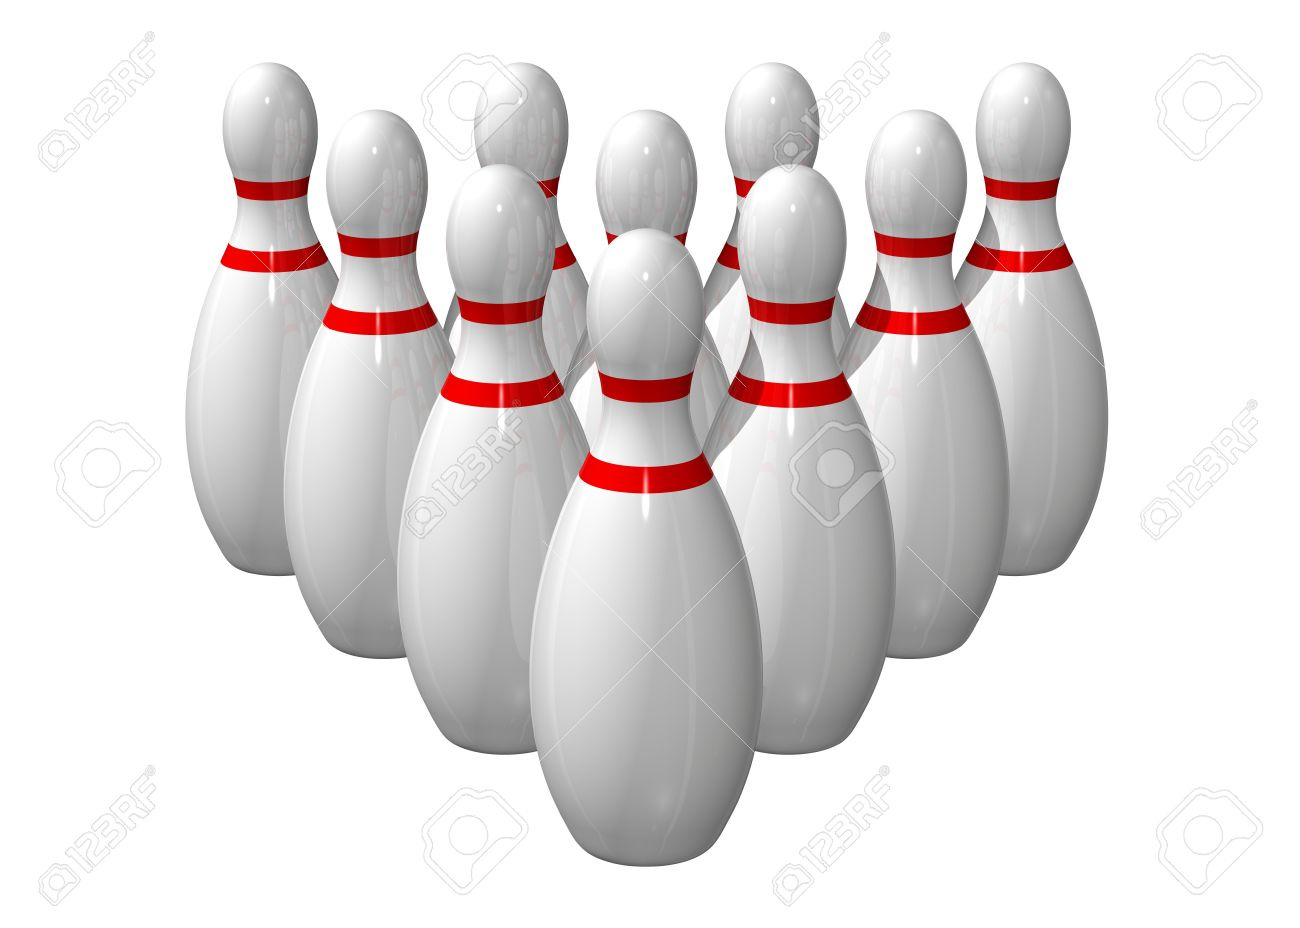 ten bowling pins lined